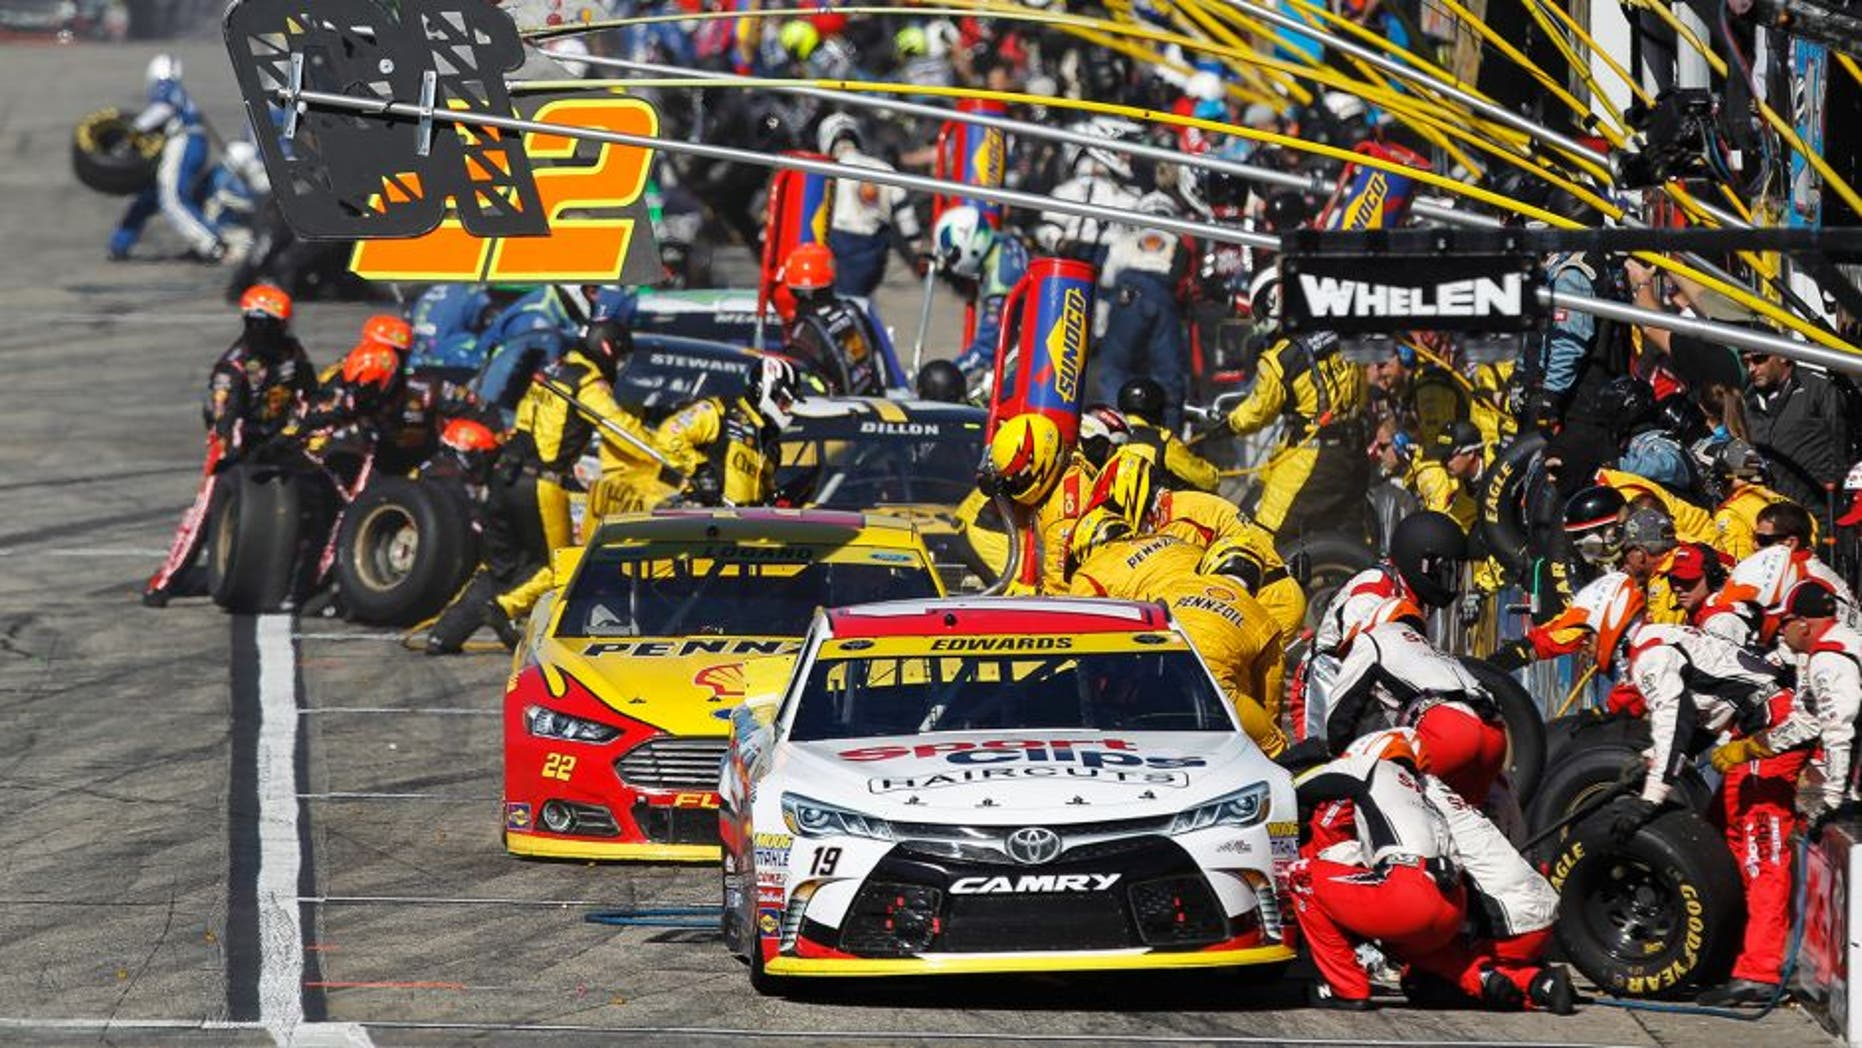 Carl Edwards, driver of the #19 Sport Clips Toyota, pits during the NASCAR Sprint Cup Series SYLVANIA 300 at New Hampshire Motor Speedway on September 27, 2015 in Loudon, New Hampshire.